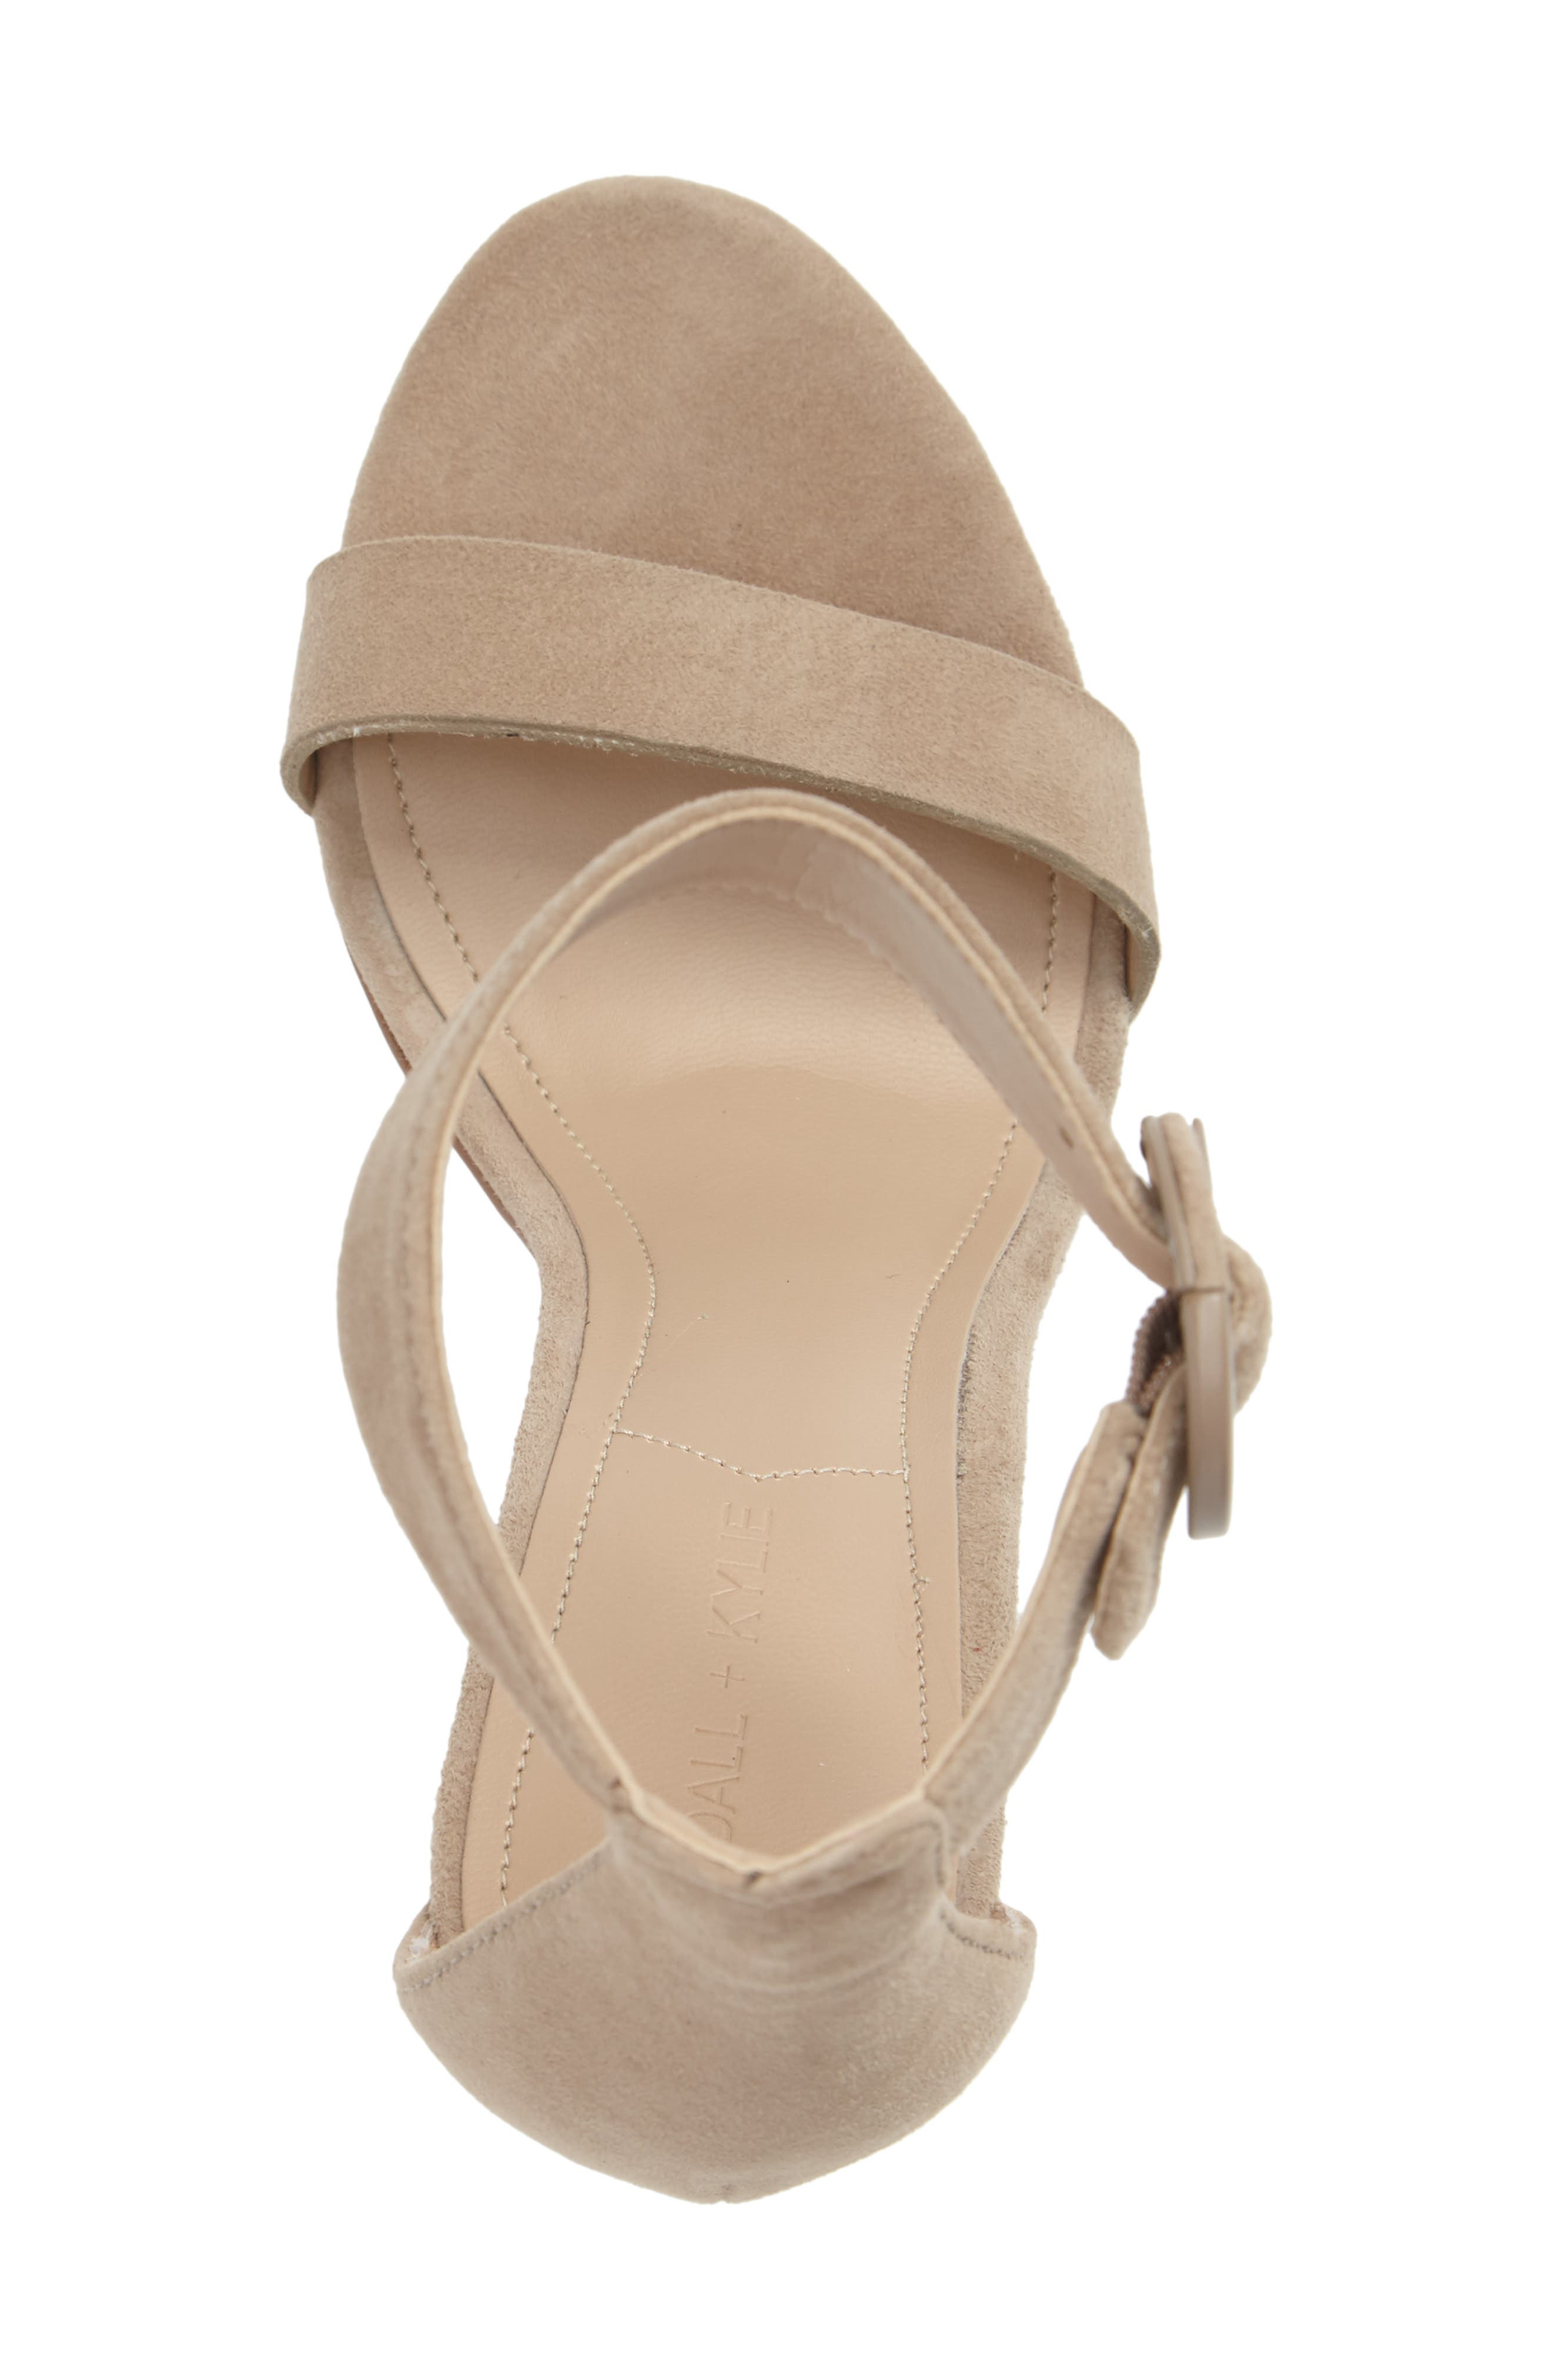 Giselle Strappy Sandal,                             Alternate thumbnail 3, color,                             Sughero Suede